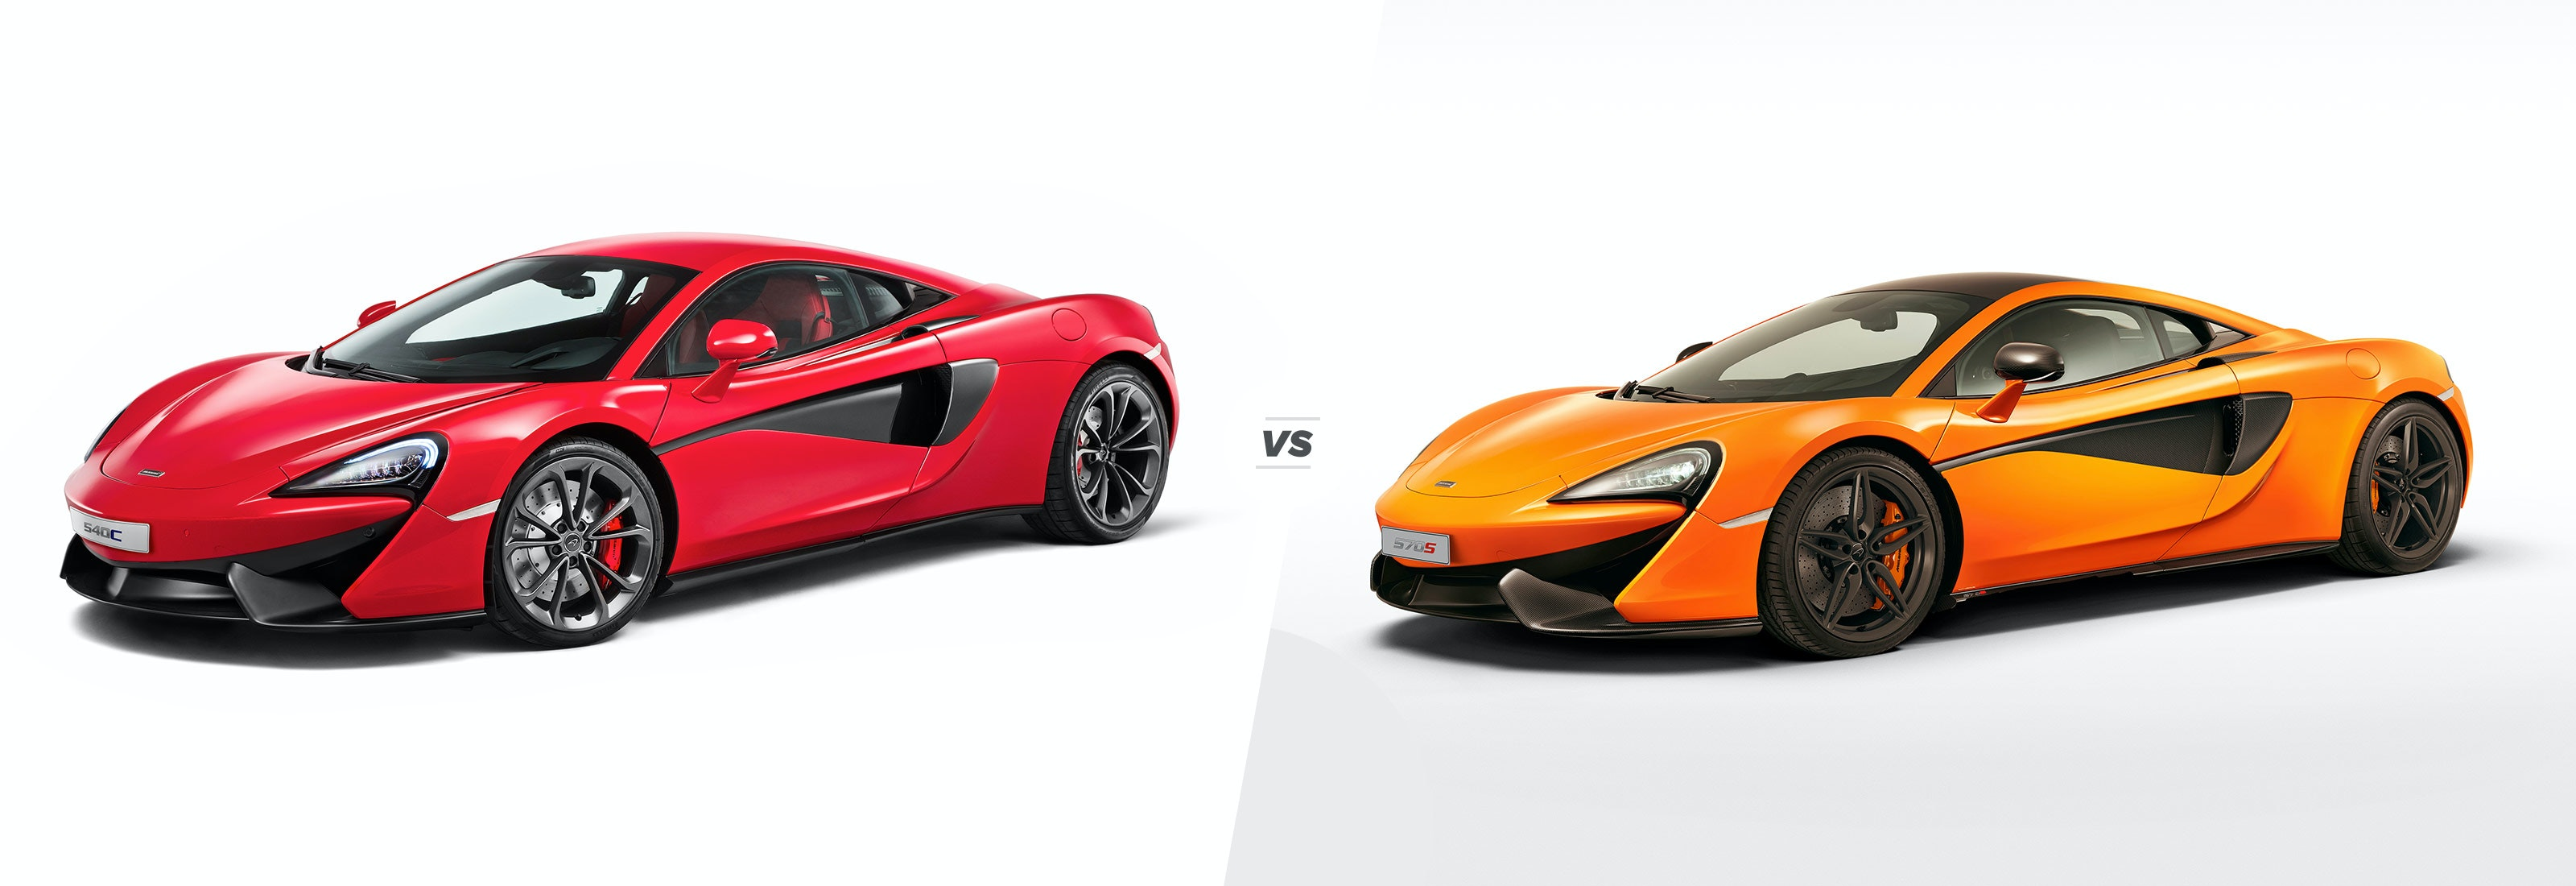 Mclaren 540c Vs 570s What S The Difference Carwow